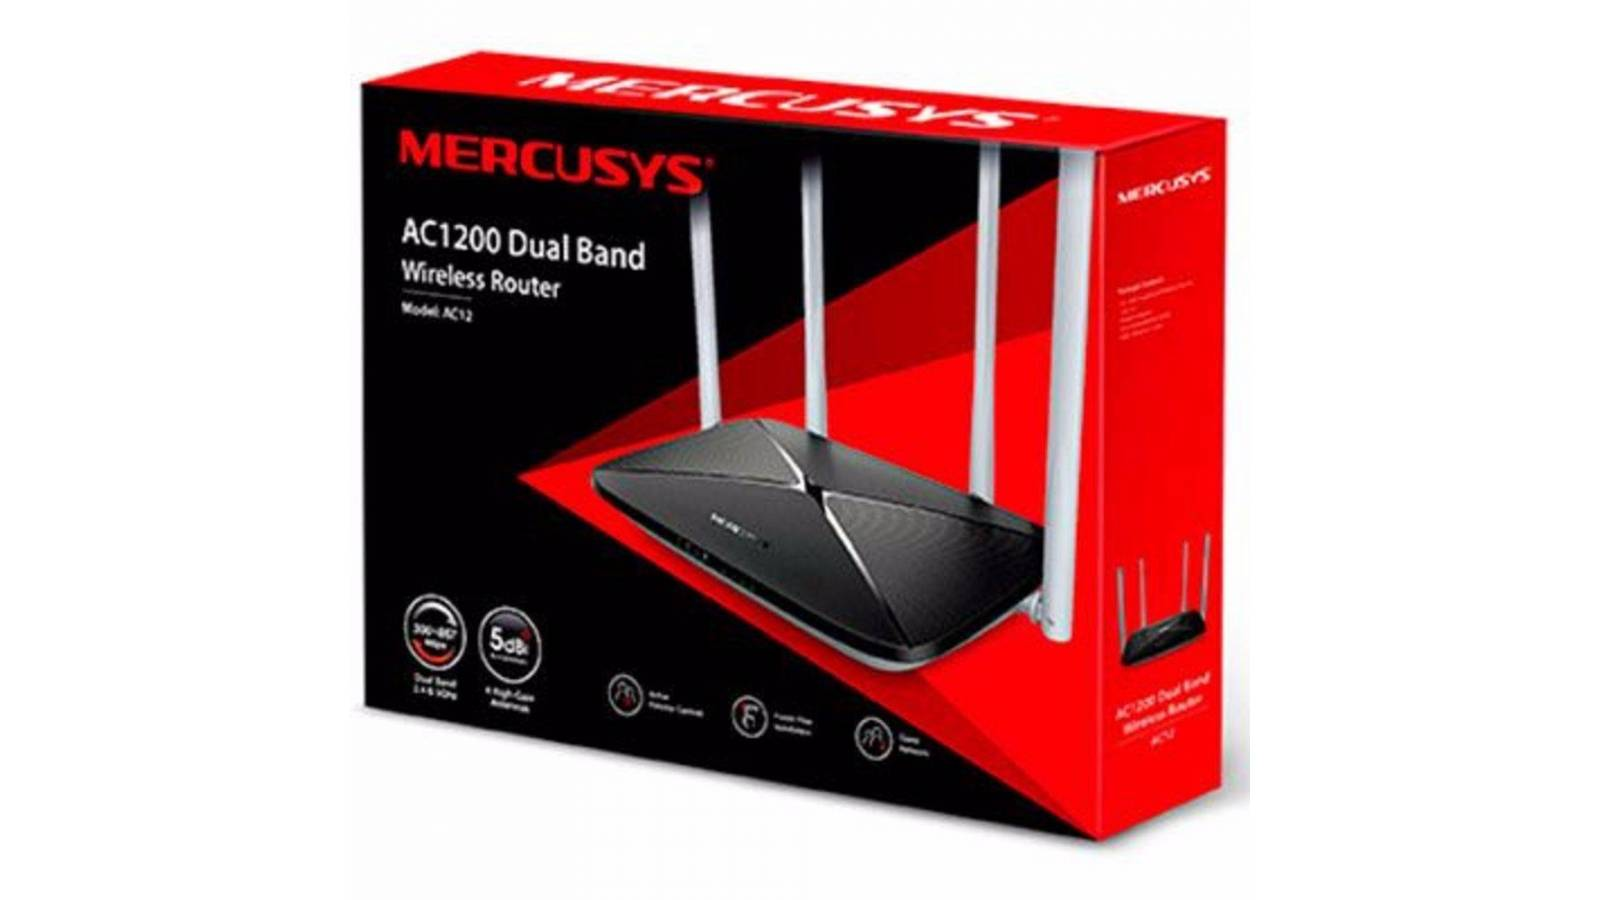 Router Wireless MERCUSYS AC12 Dual Band AC1200 (300867 Mbps)